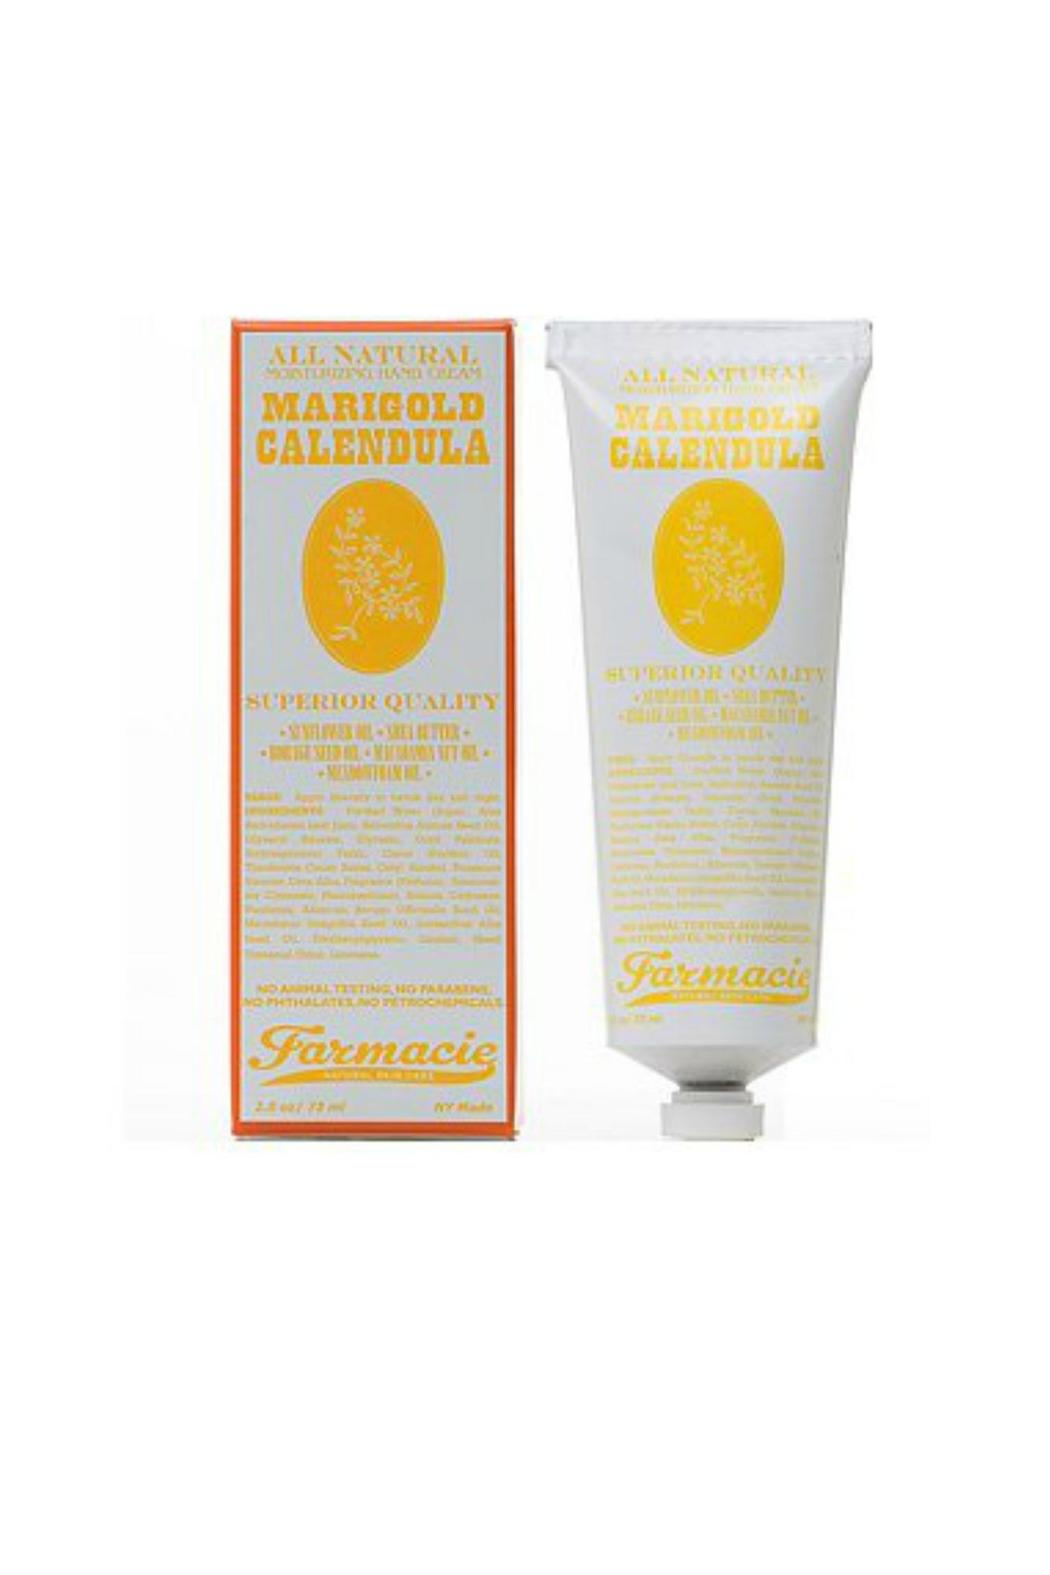 Soap and Paper Factory Marigold Calendula Handcreme - Main Image